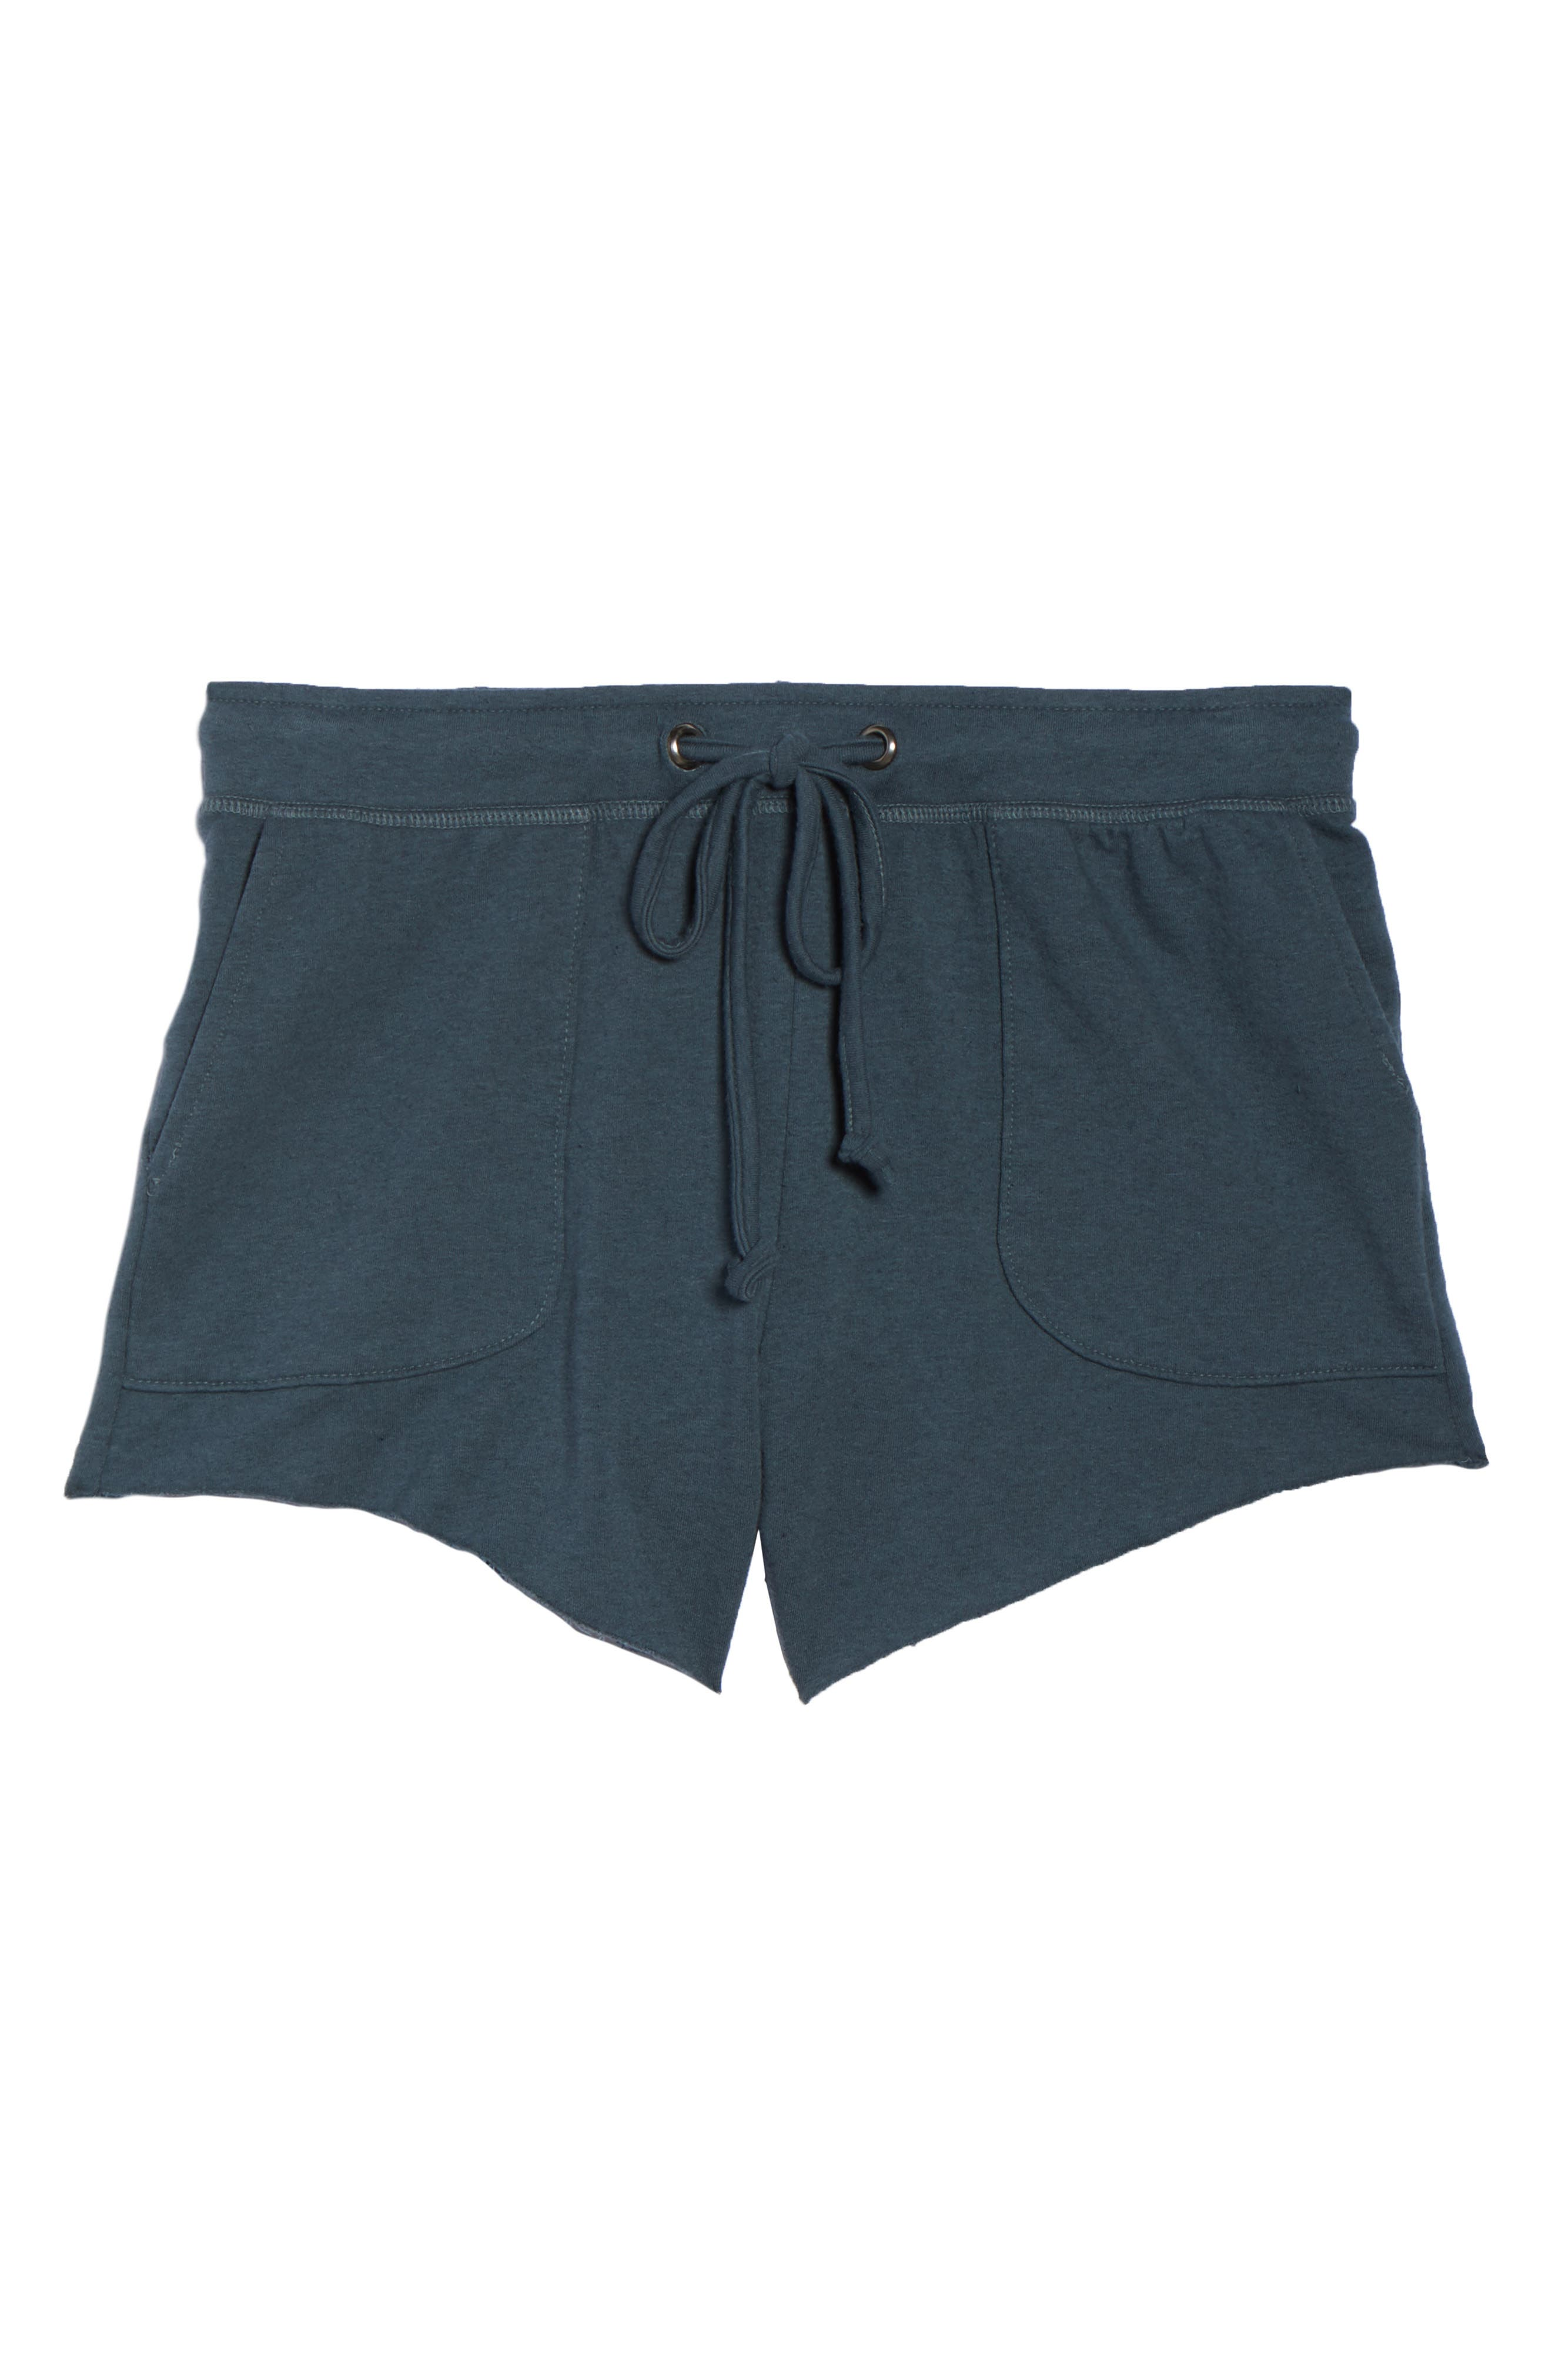 Raw Cut Lounge Shorts,                             Alternate thumbnail 6, color,                             021